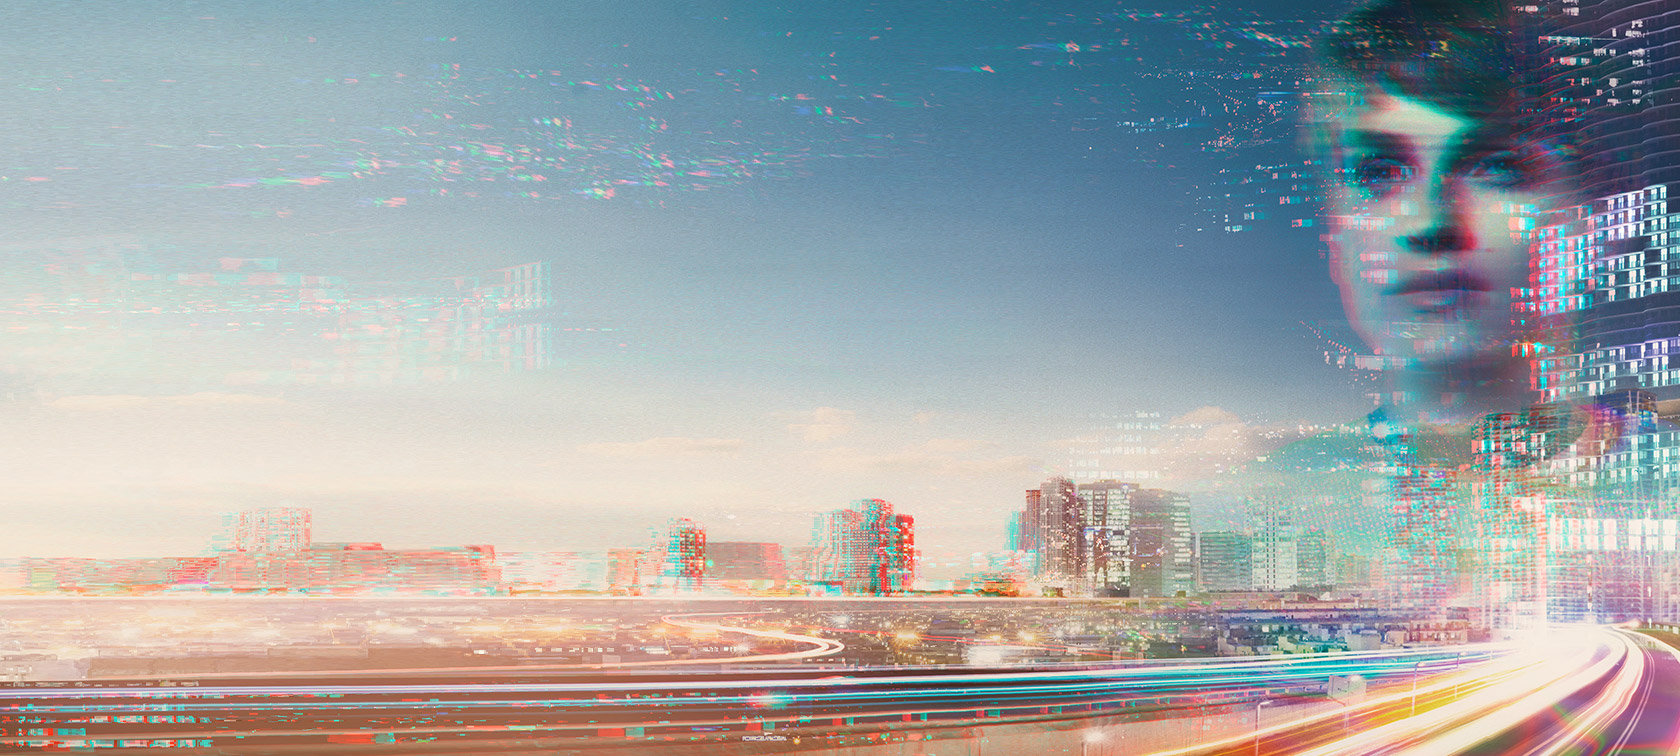 Futuristic image of a pixelated city and a pixelated face of a woman that is staring in the distance.